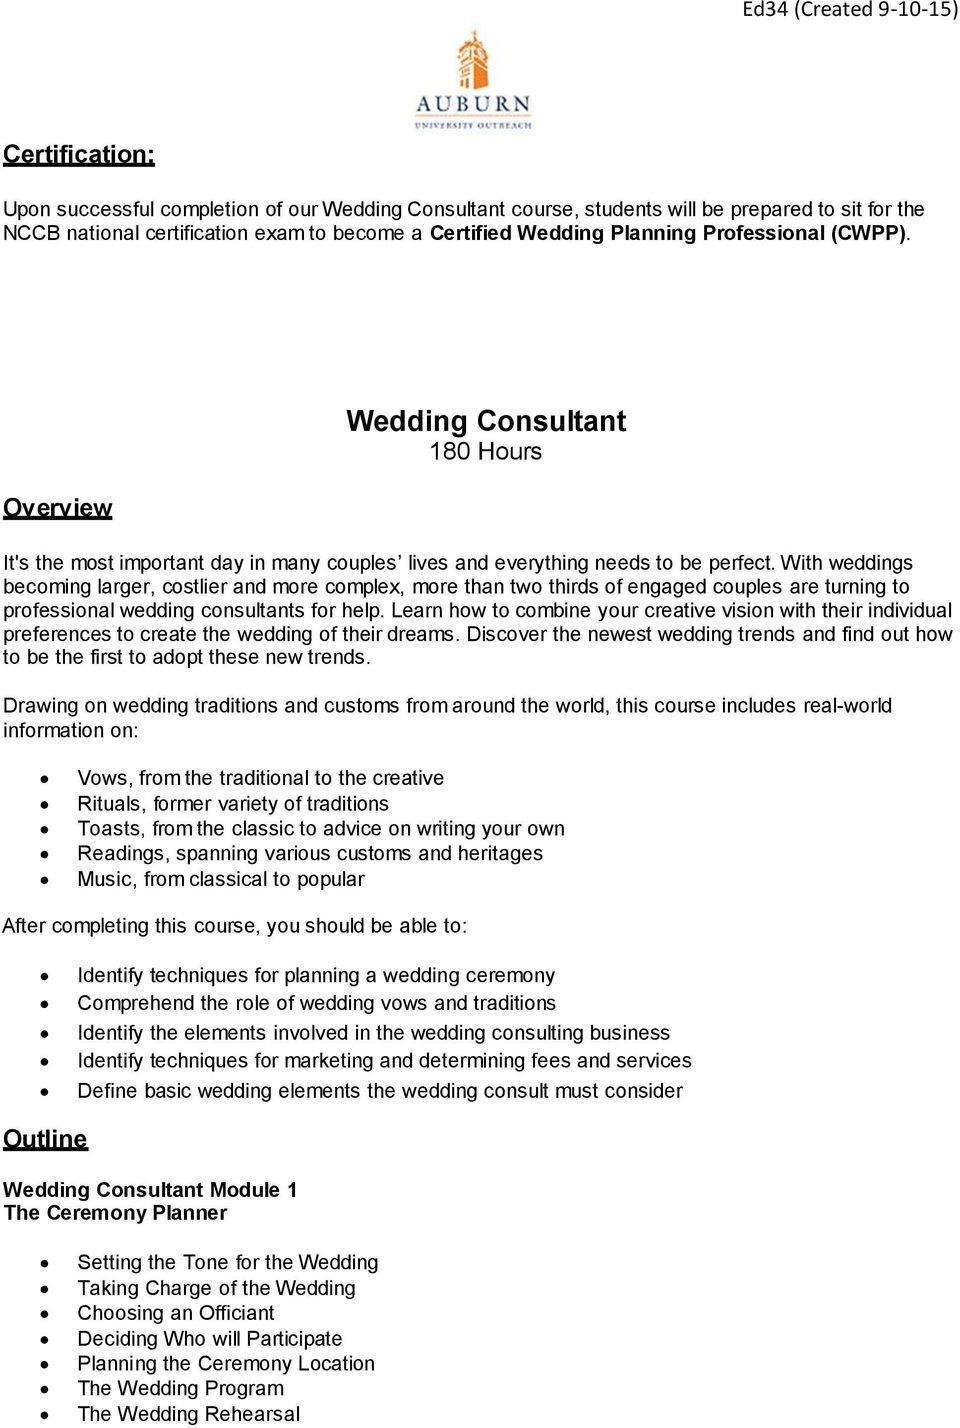 With weddings becoming larger, costlier and more complex, more than two thirds of engaged couples are turning to professional wedding consultants for help.